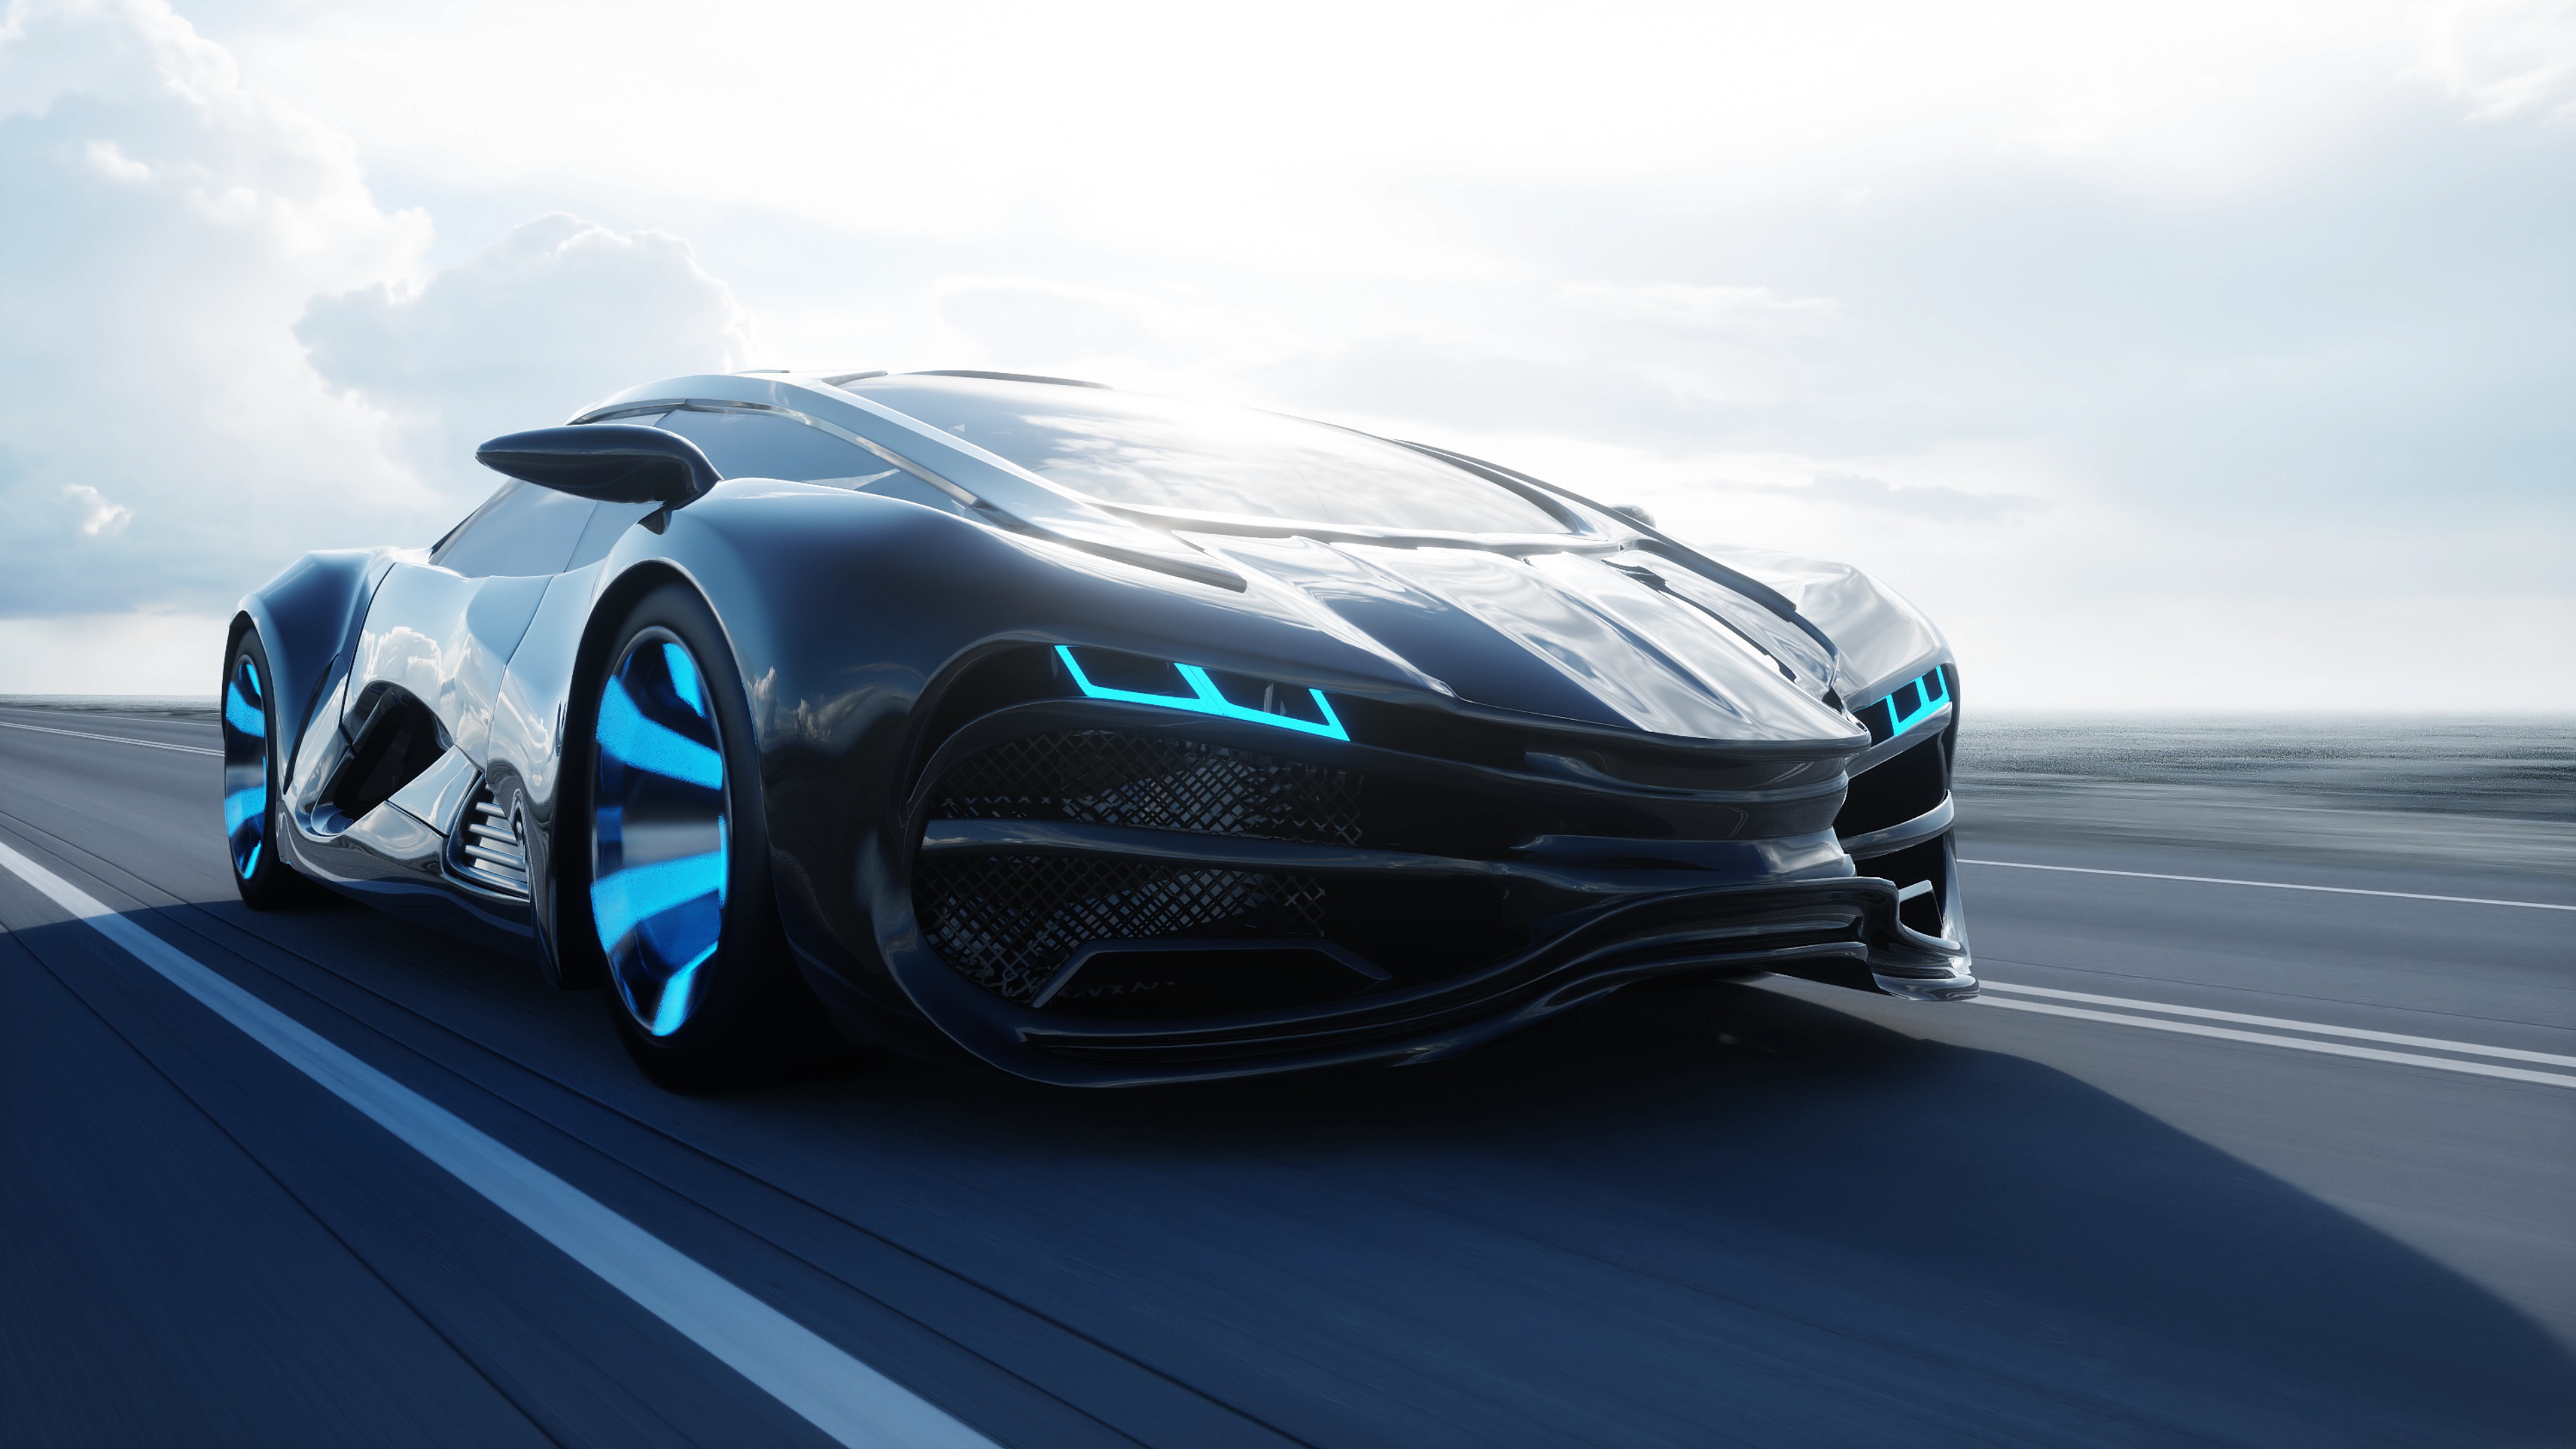 automotive design influenced by technology